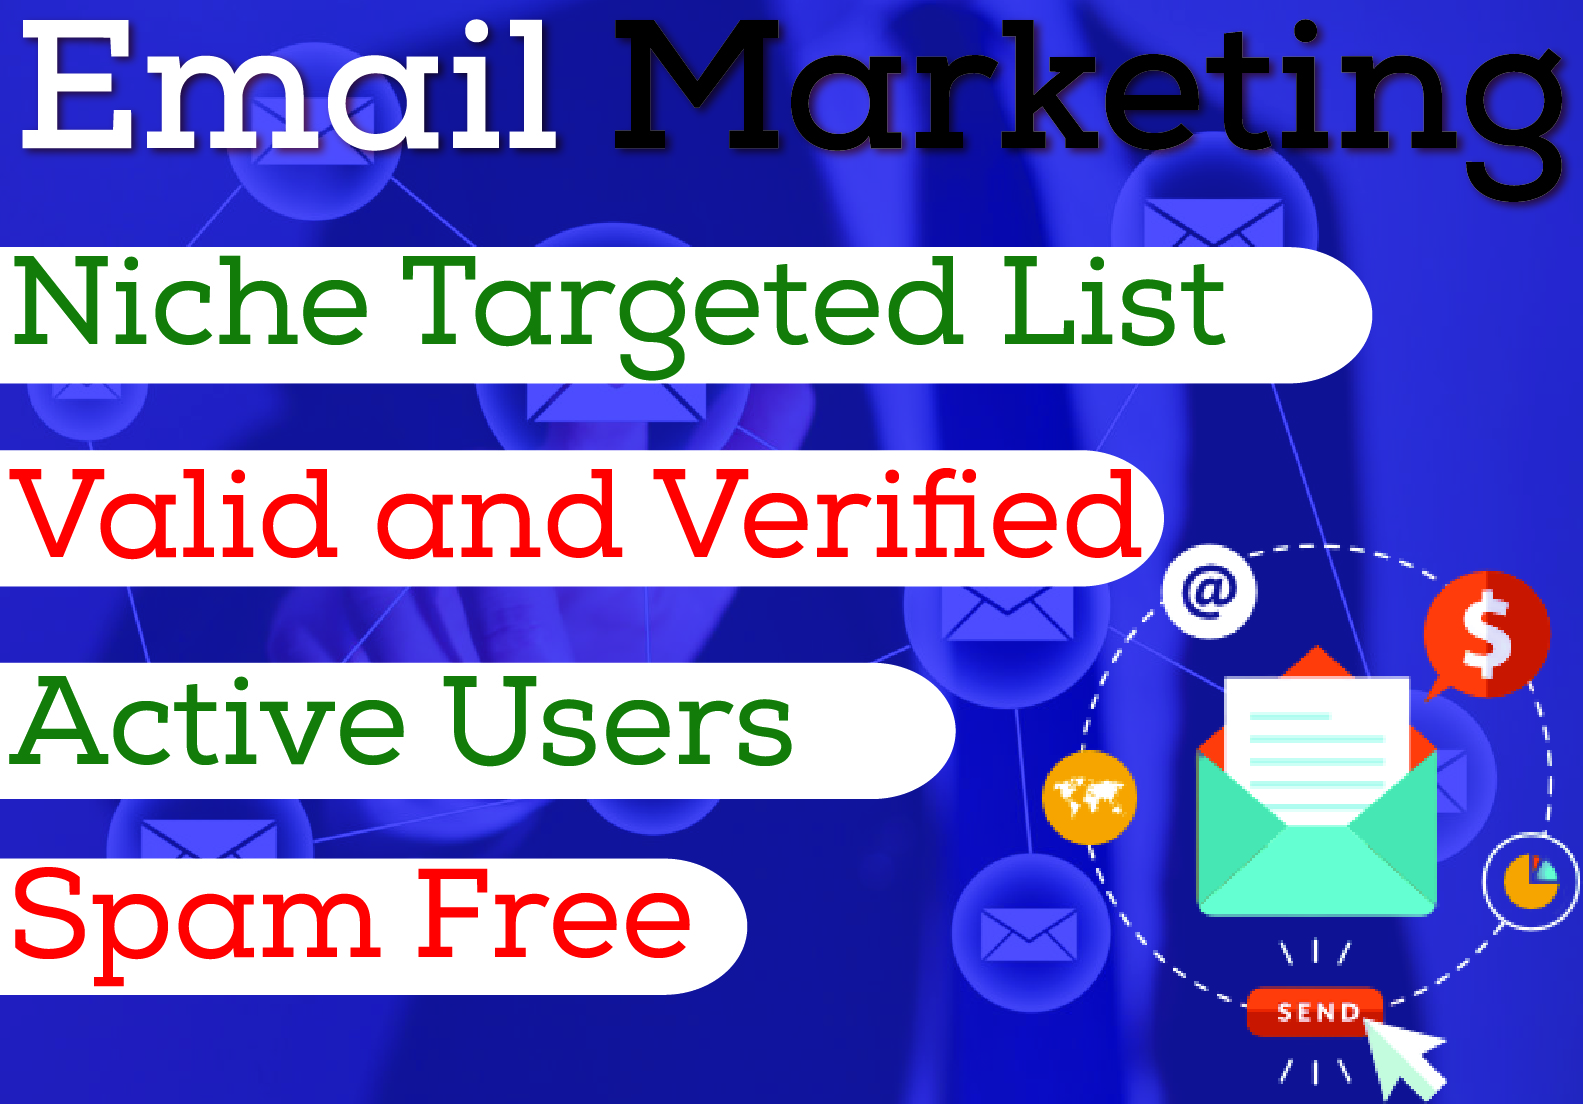 Start your Email Marketing with 2000 Niche Targeted Email list